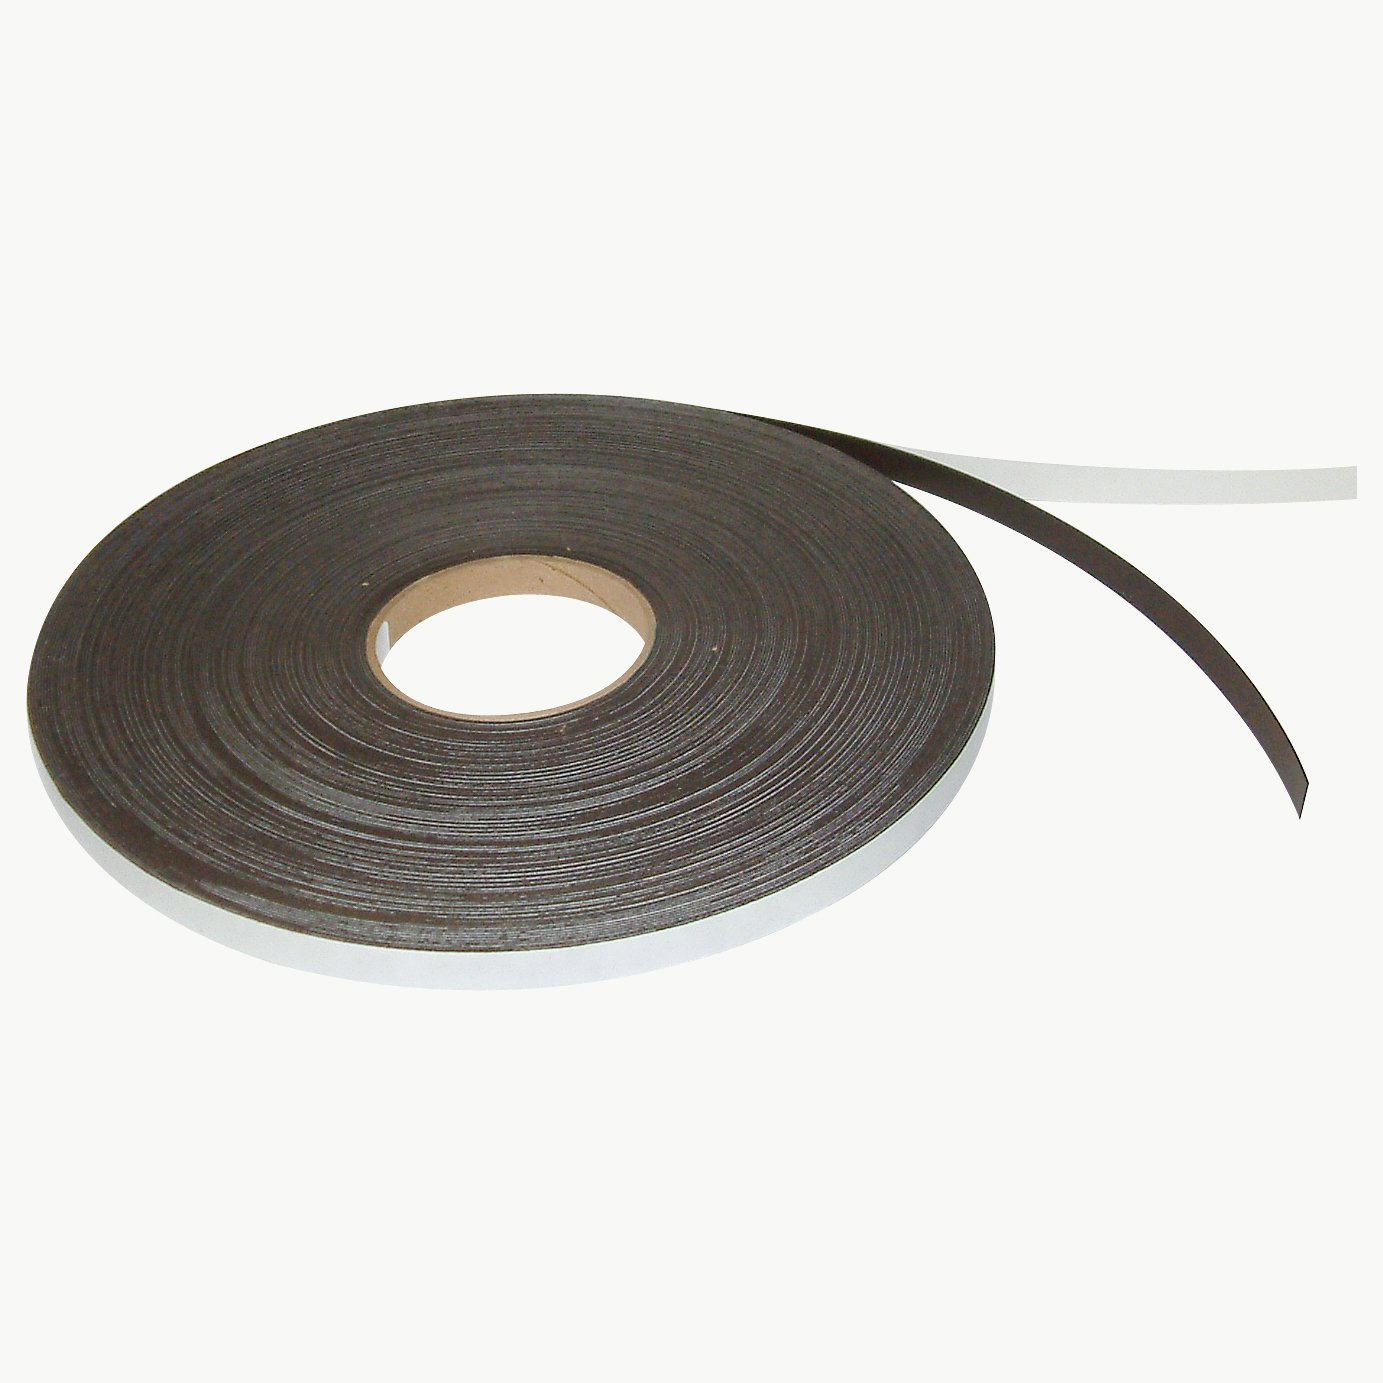 JVCC MAG-01 Magnetic Tape: 1/2 in. x 66-2/3 yds. (Black)